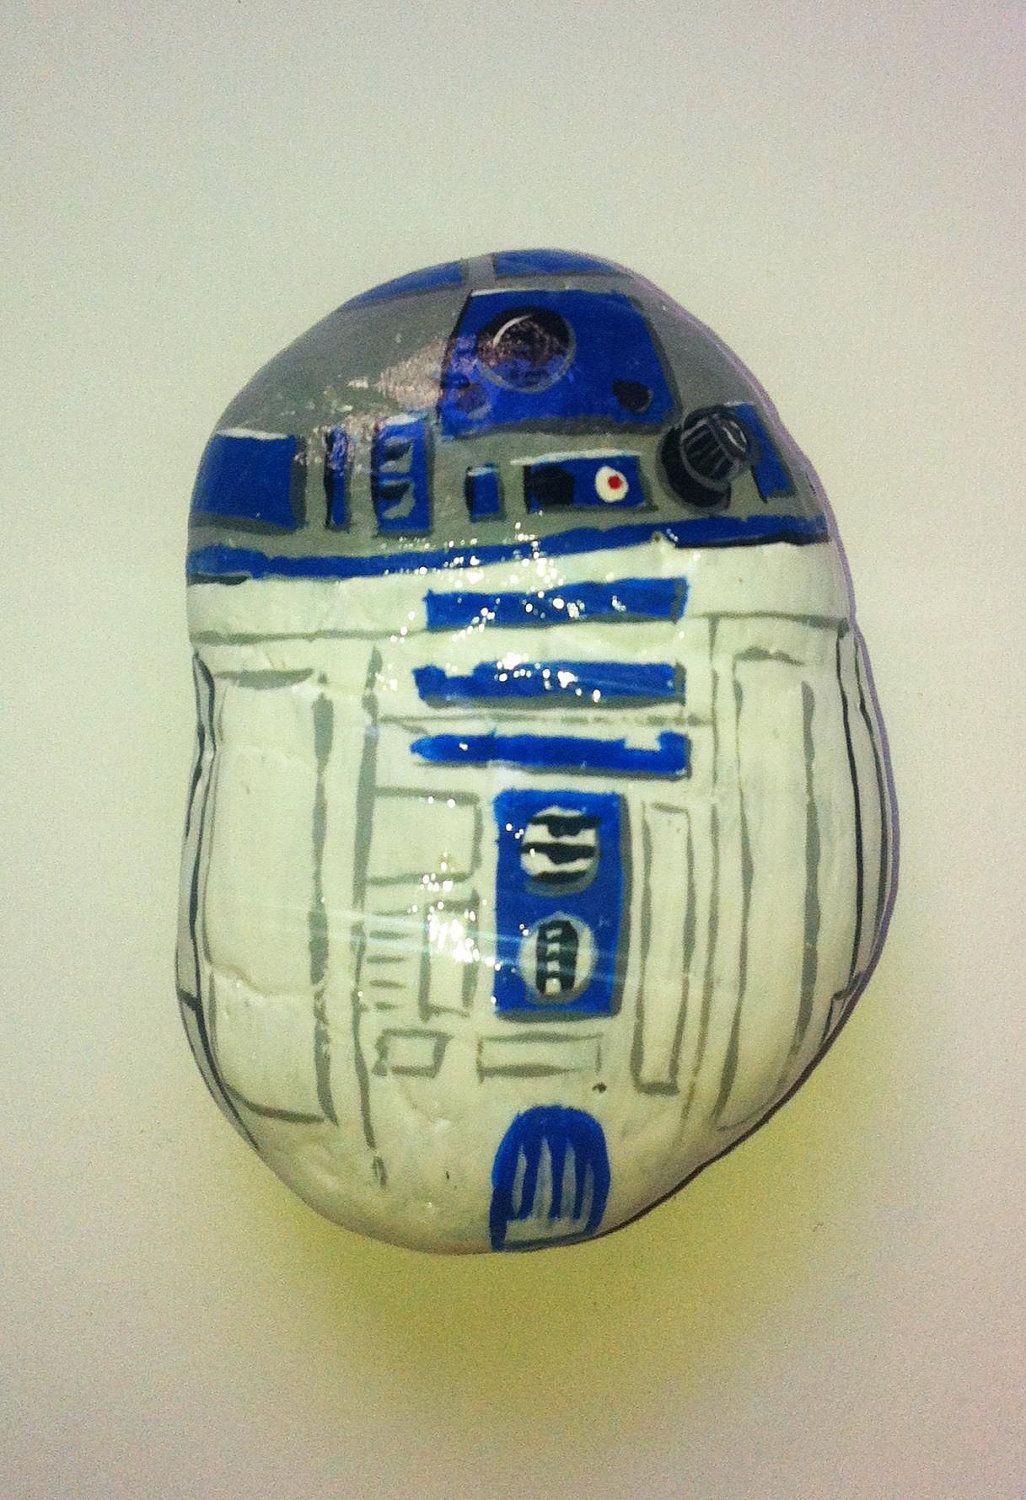 R2D2 Painted Rock by RocksRocks on Etsy, $20.00...cuz it's soooooo cool and cuz my son is the artist!